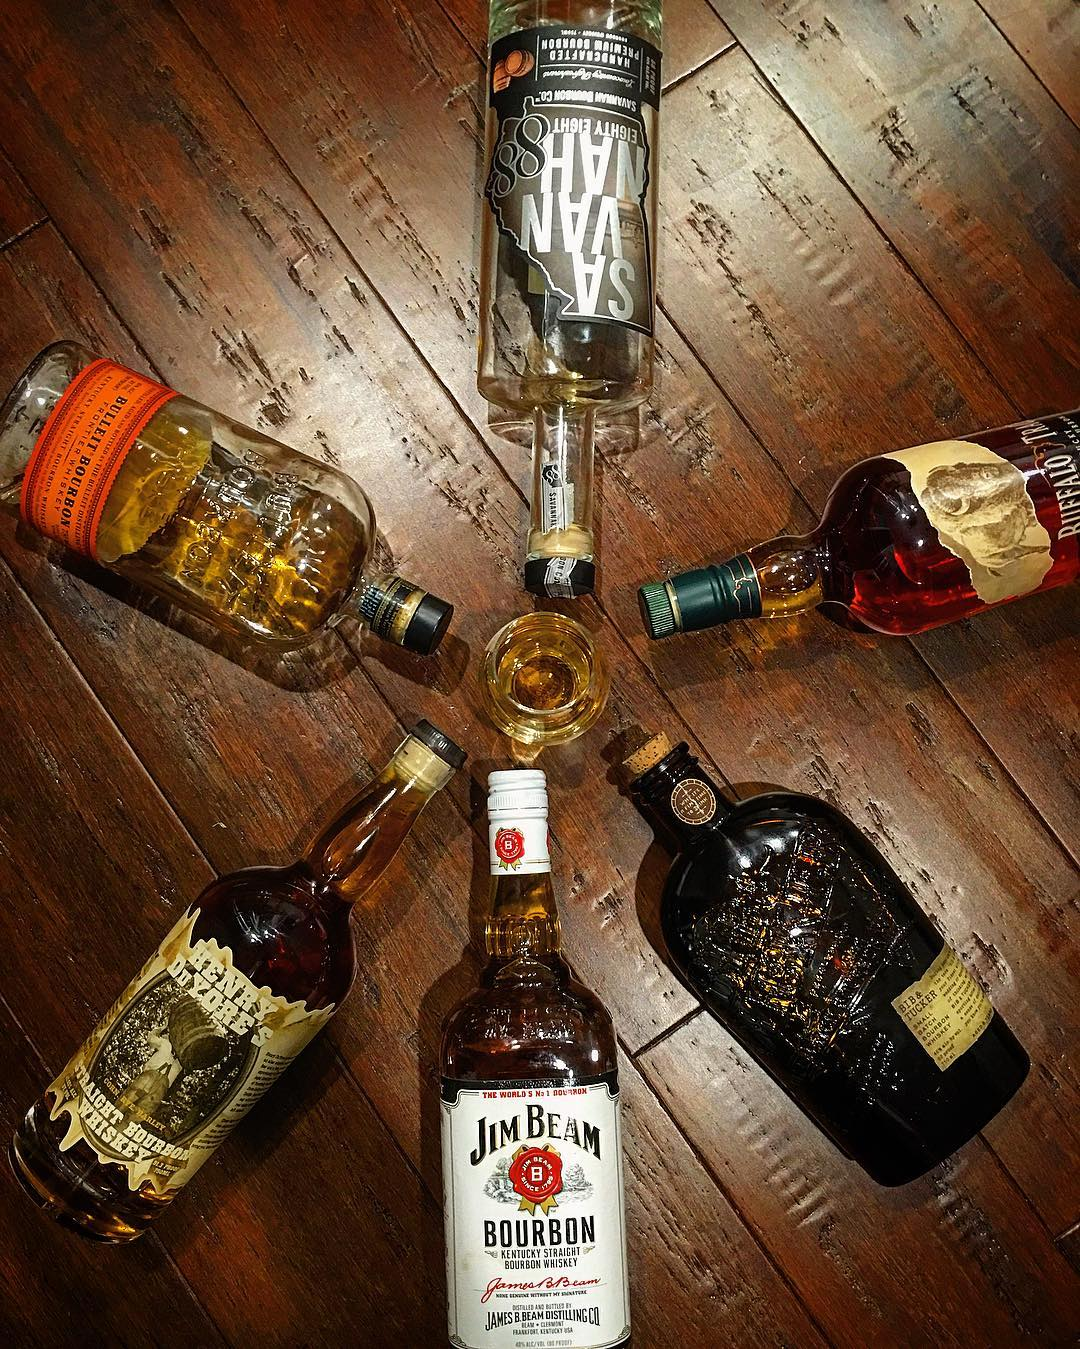 Happy National Bourbon Day! Always nice to bring your friends along... But who's in the glass?! @buffalotrace @jimbeamofficial @bandtbourbon @savannahbourbon @bulleit @ransomspirits #nationalbourbonday #nationalbourbonday2016 #bourbon #straightkentuckybourbon #whisky #whiskey #bourbonwhiskey #jimbeam #bibandtucker #henryduyores #bulleit #bulleitbourbon #buffalotrace #savannahbourbon #savannah #visitsavannah #bowtiebarbecueco #bowtiesarecool